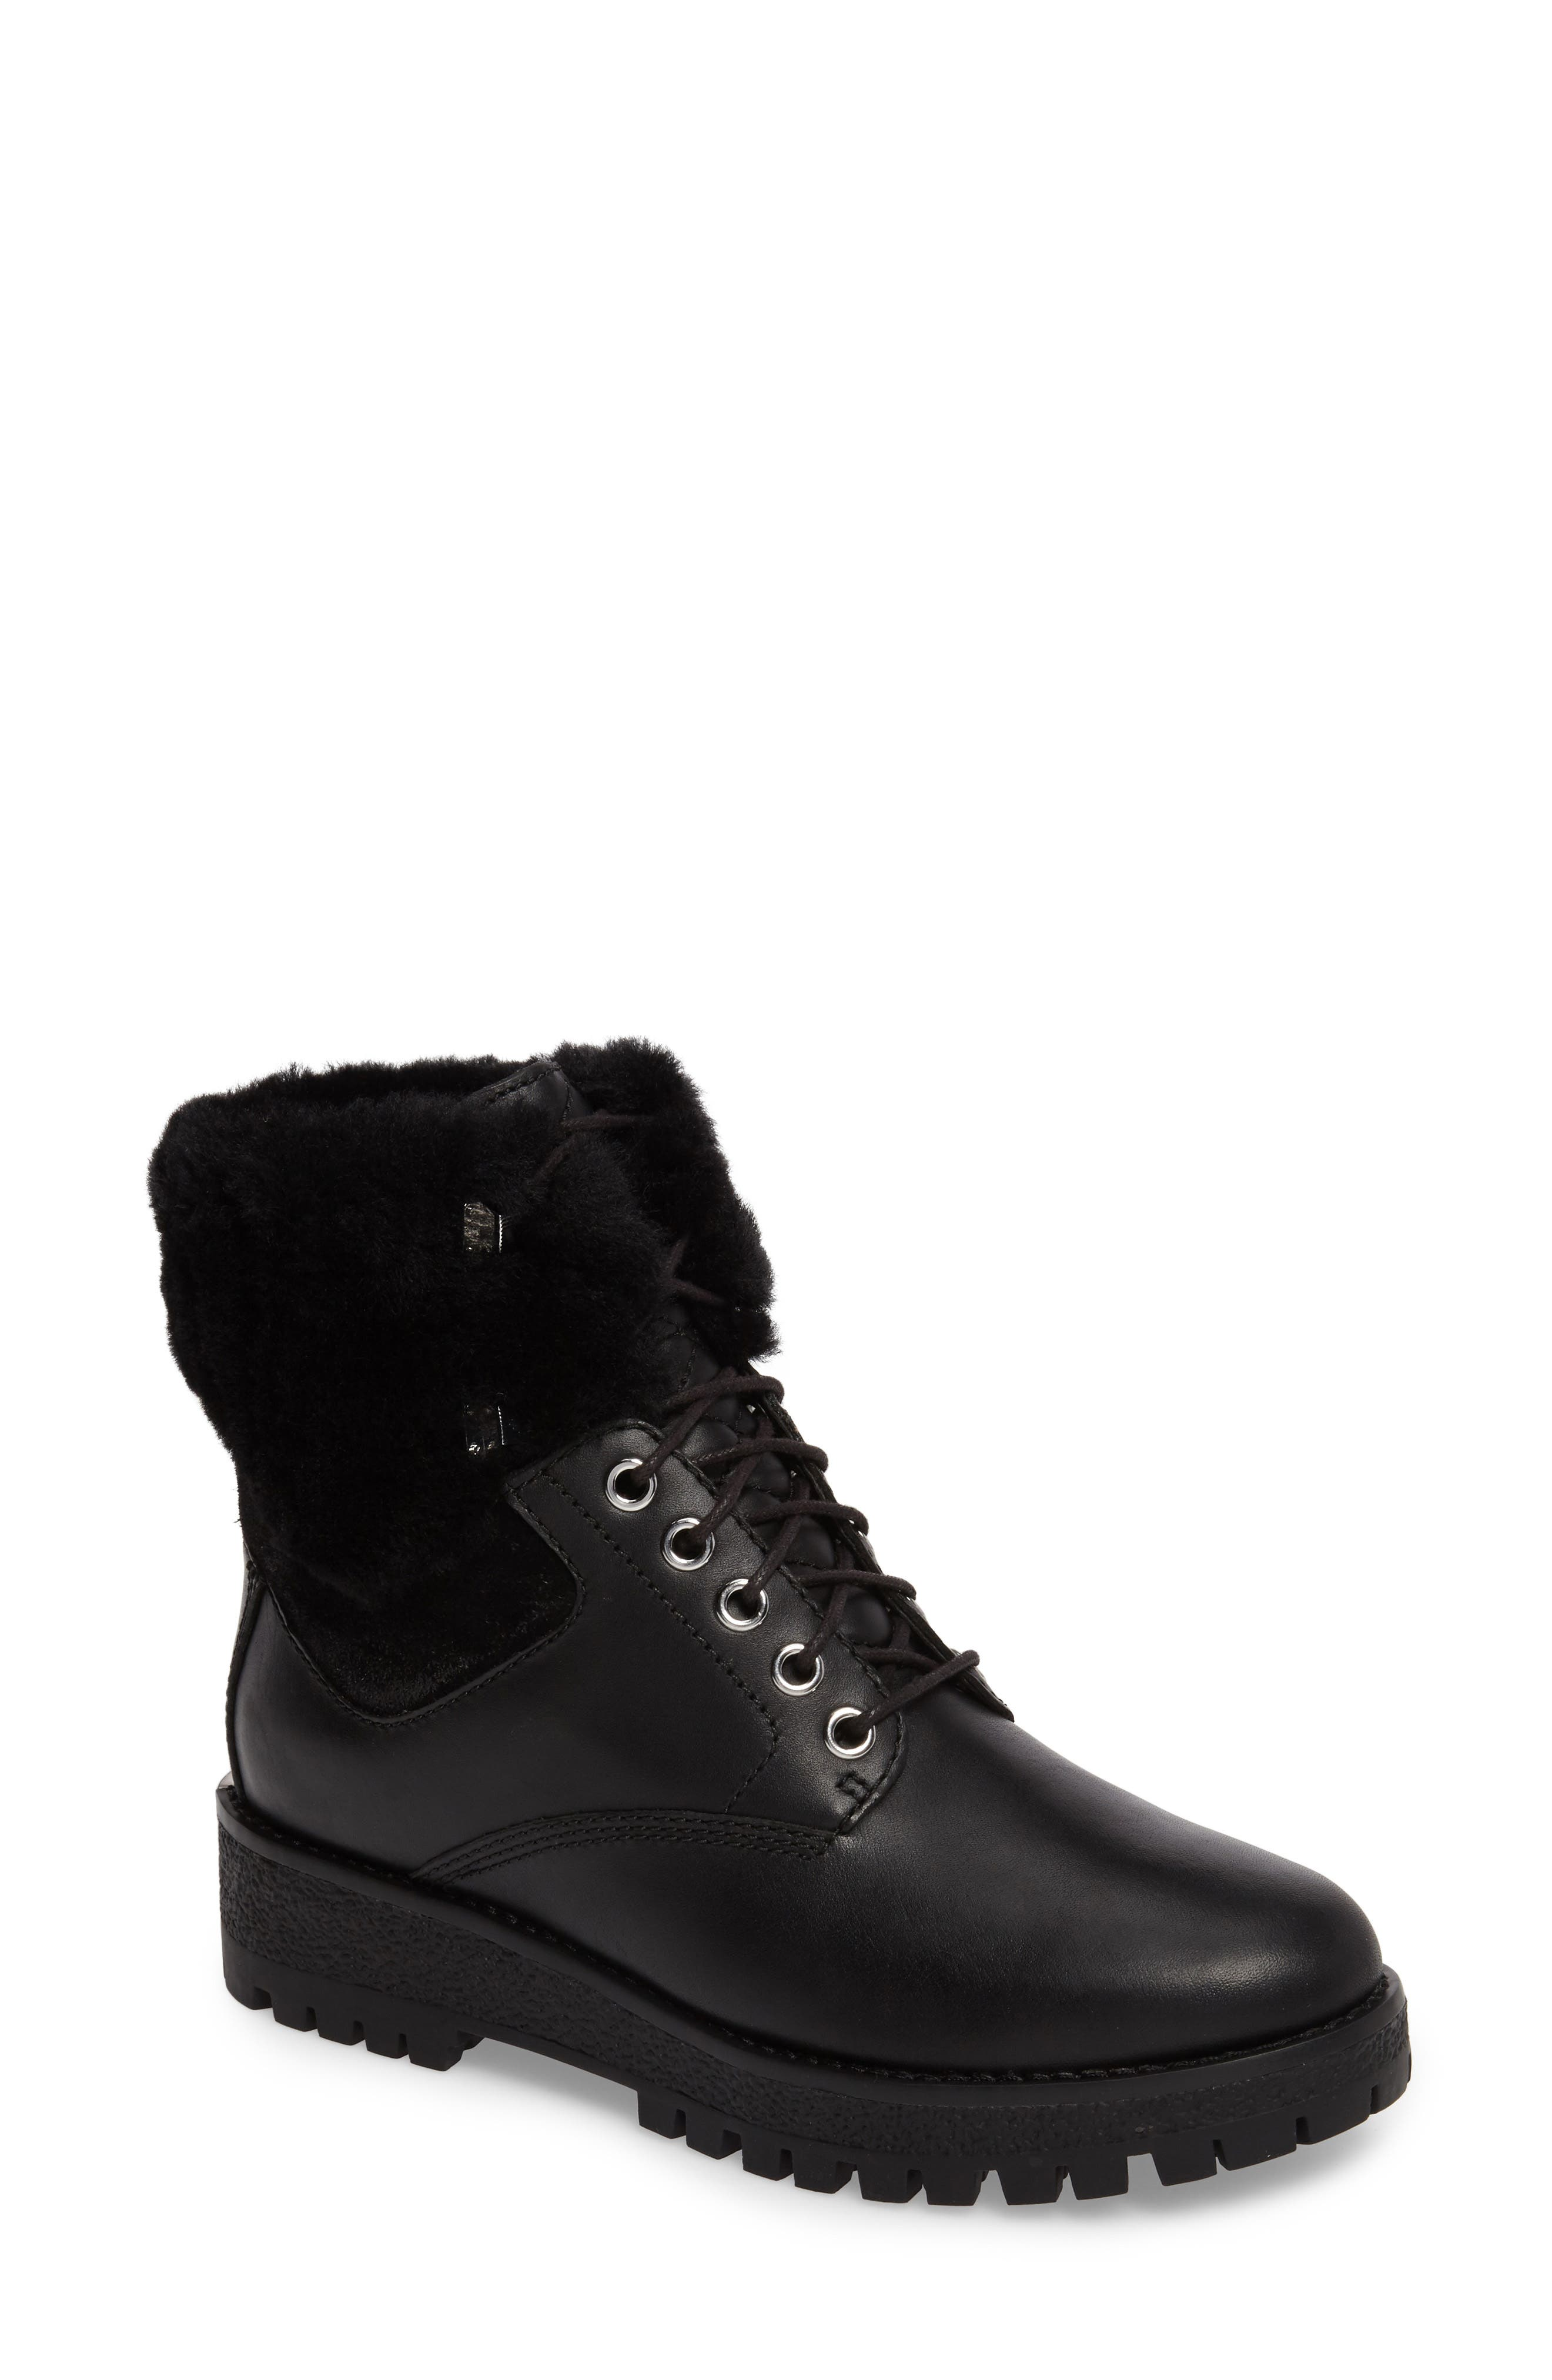 Teddy Water Resistant Boot with Genuine Shearling Trim,                             Main thumbnail 1, color,                             001